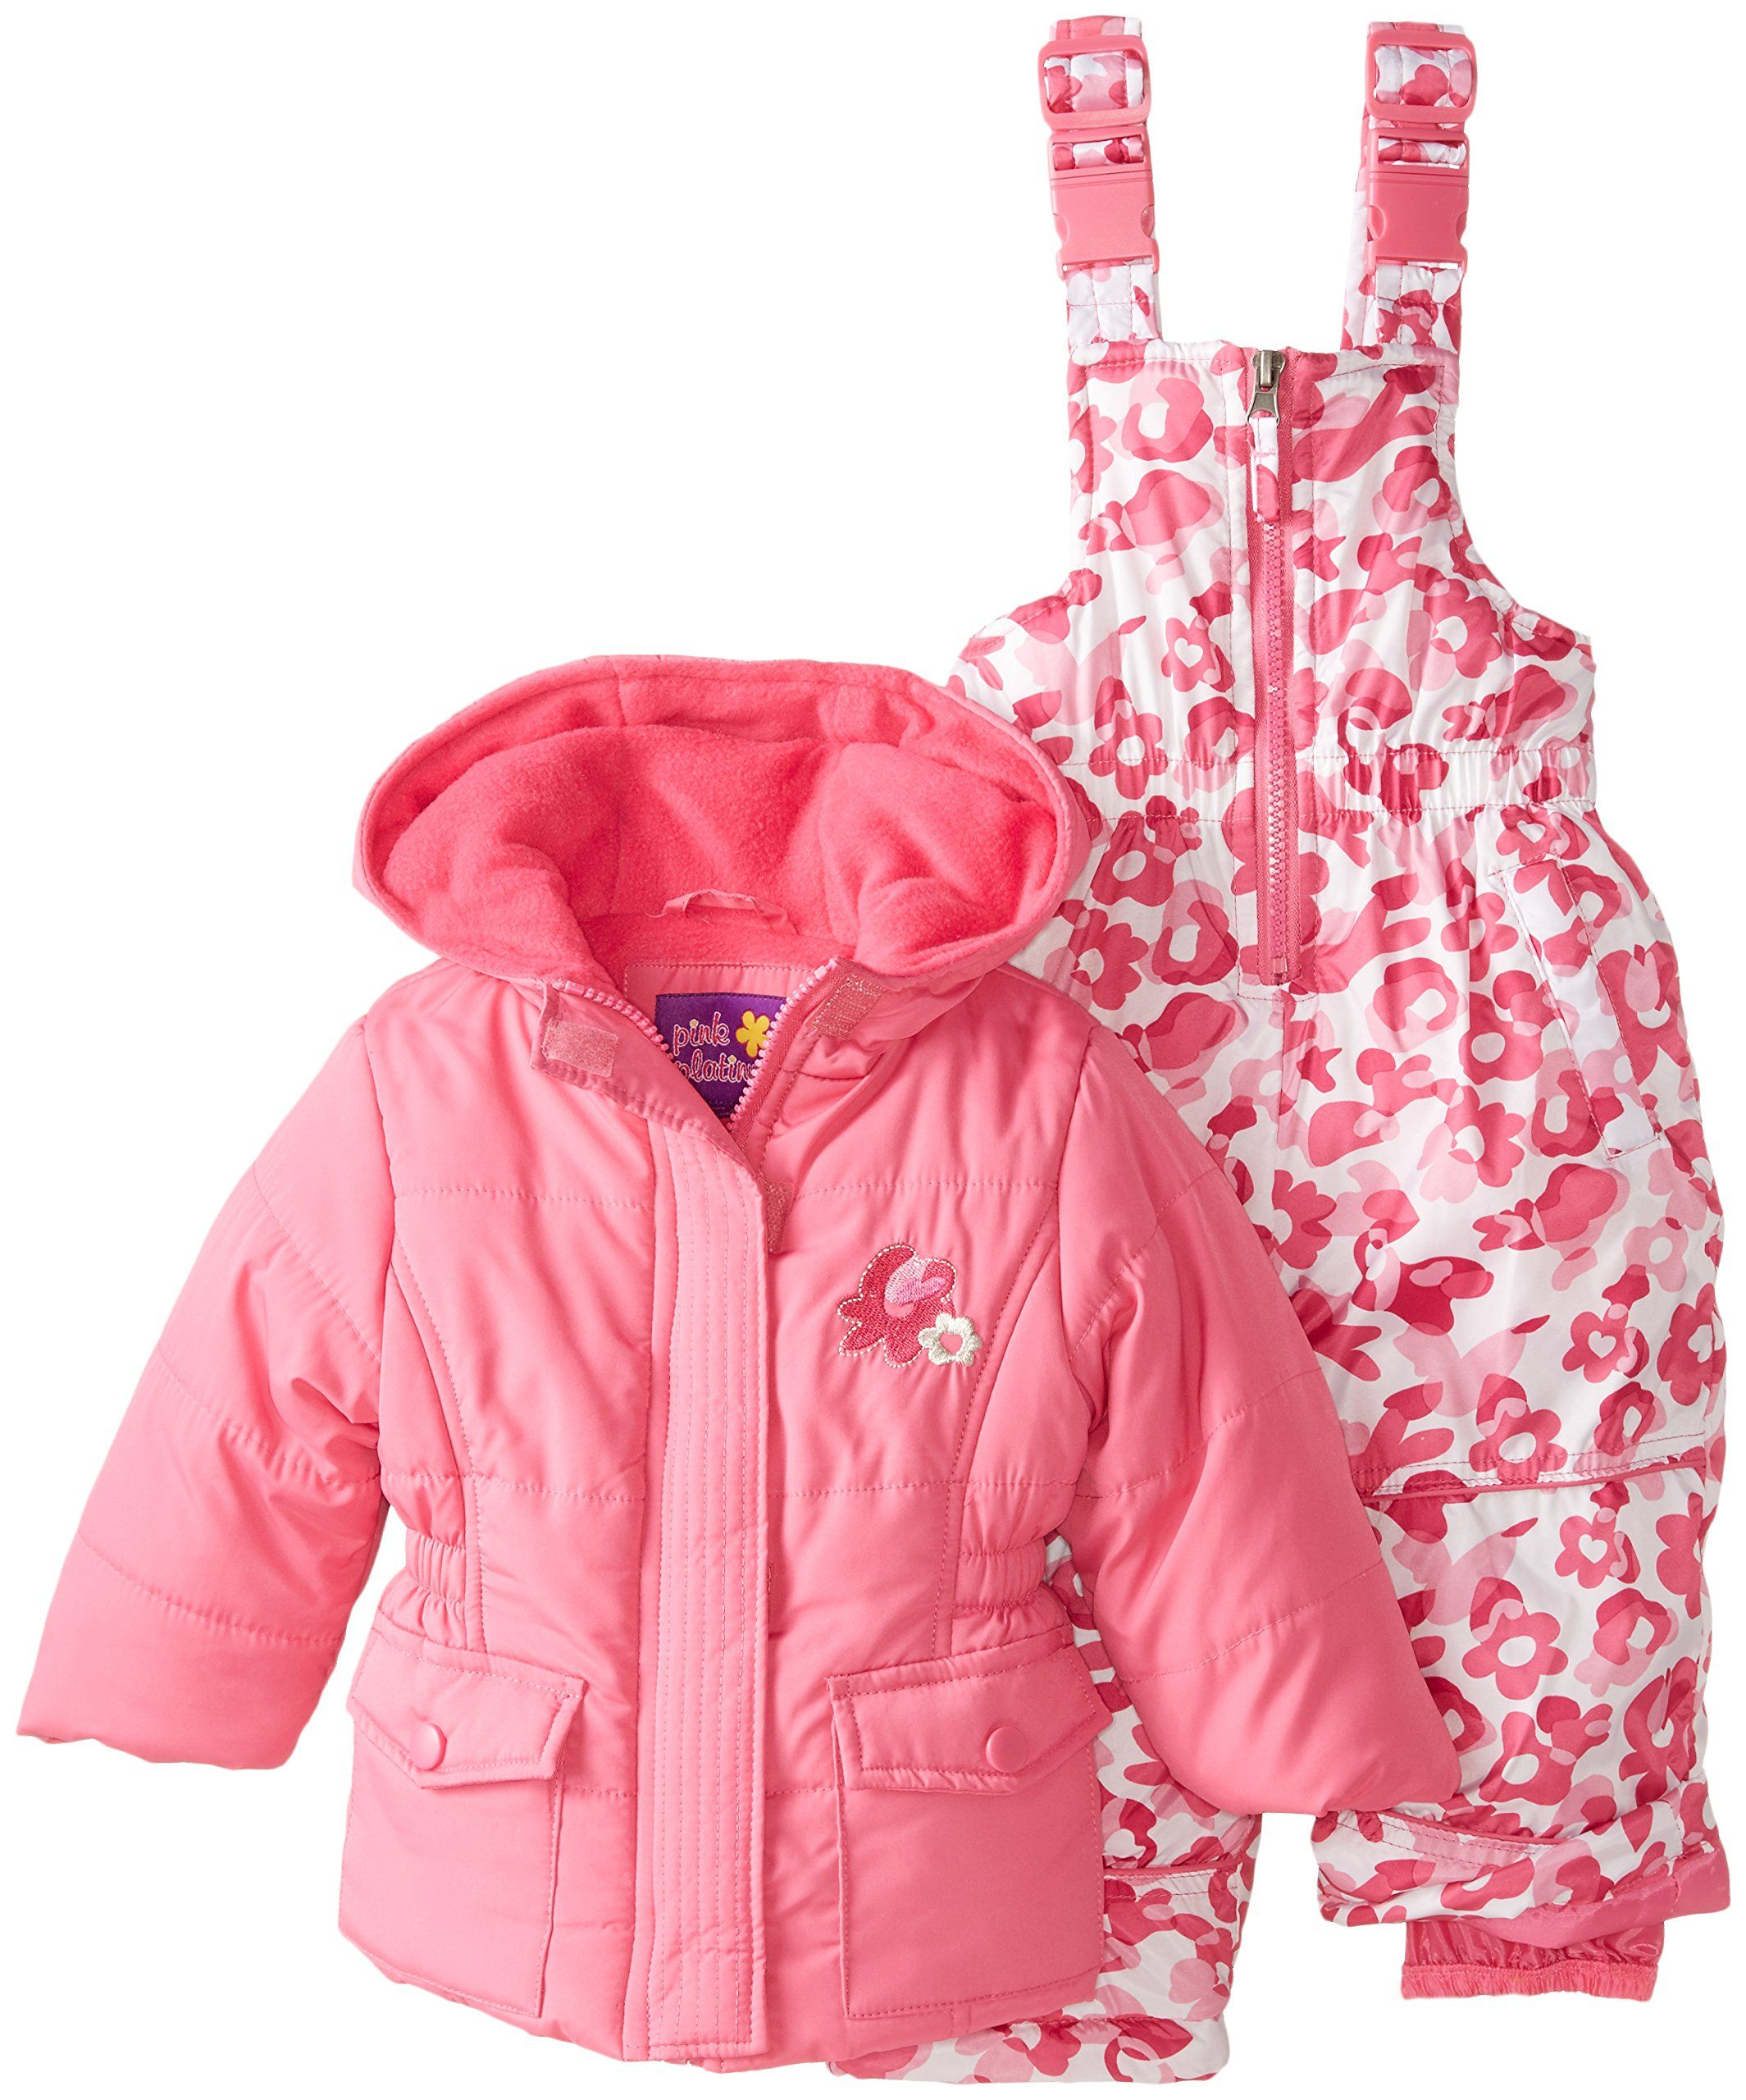 puffer shoes shipping girls free pink over on platinum snowsuit baby overstock camo bunting product winter floral orders pram clothing carbag